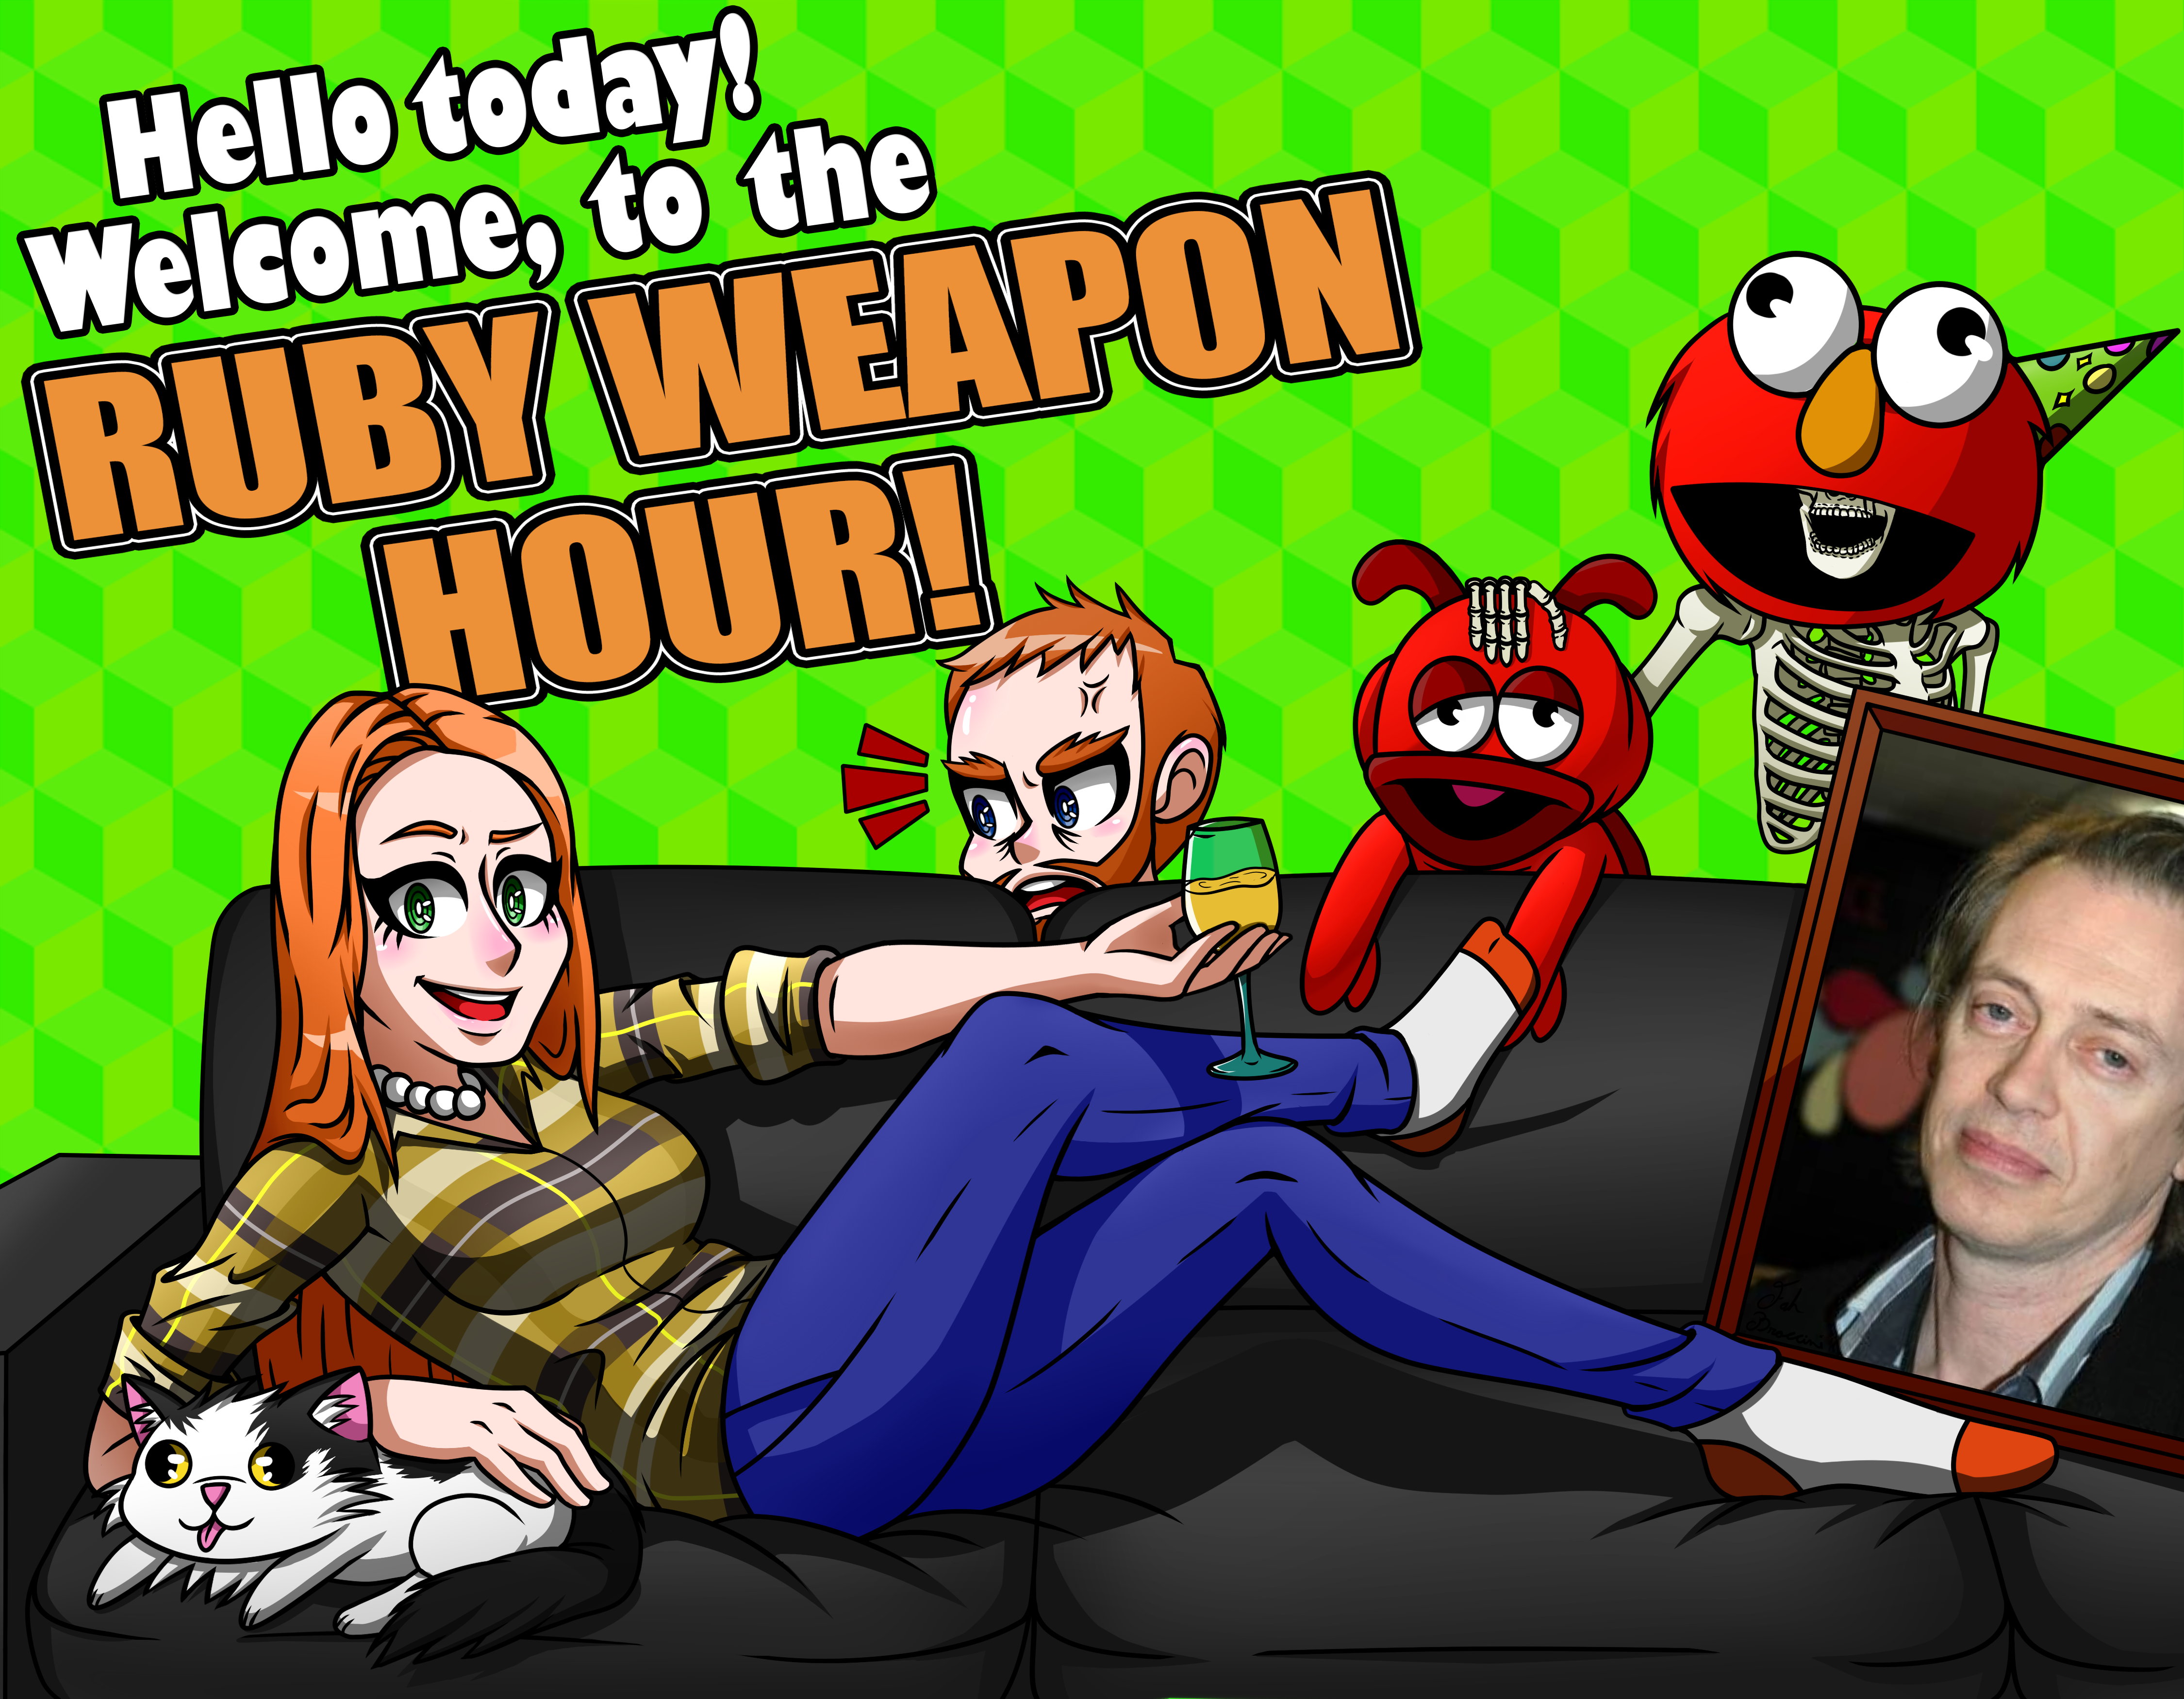 Ruby Weapon Hour